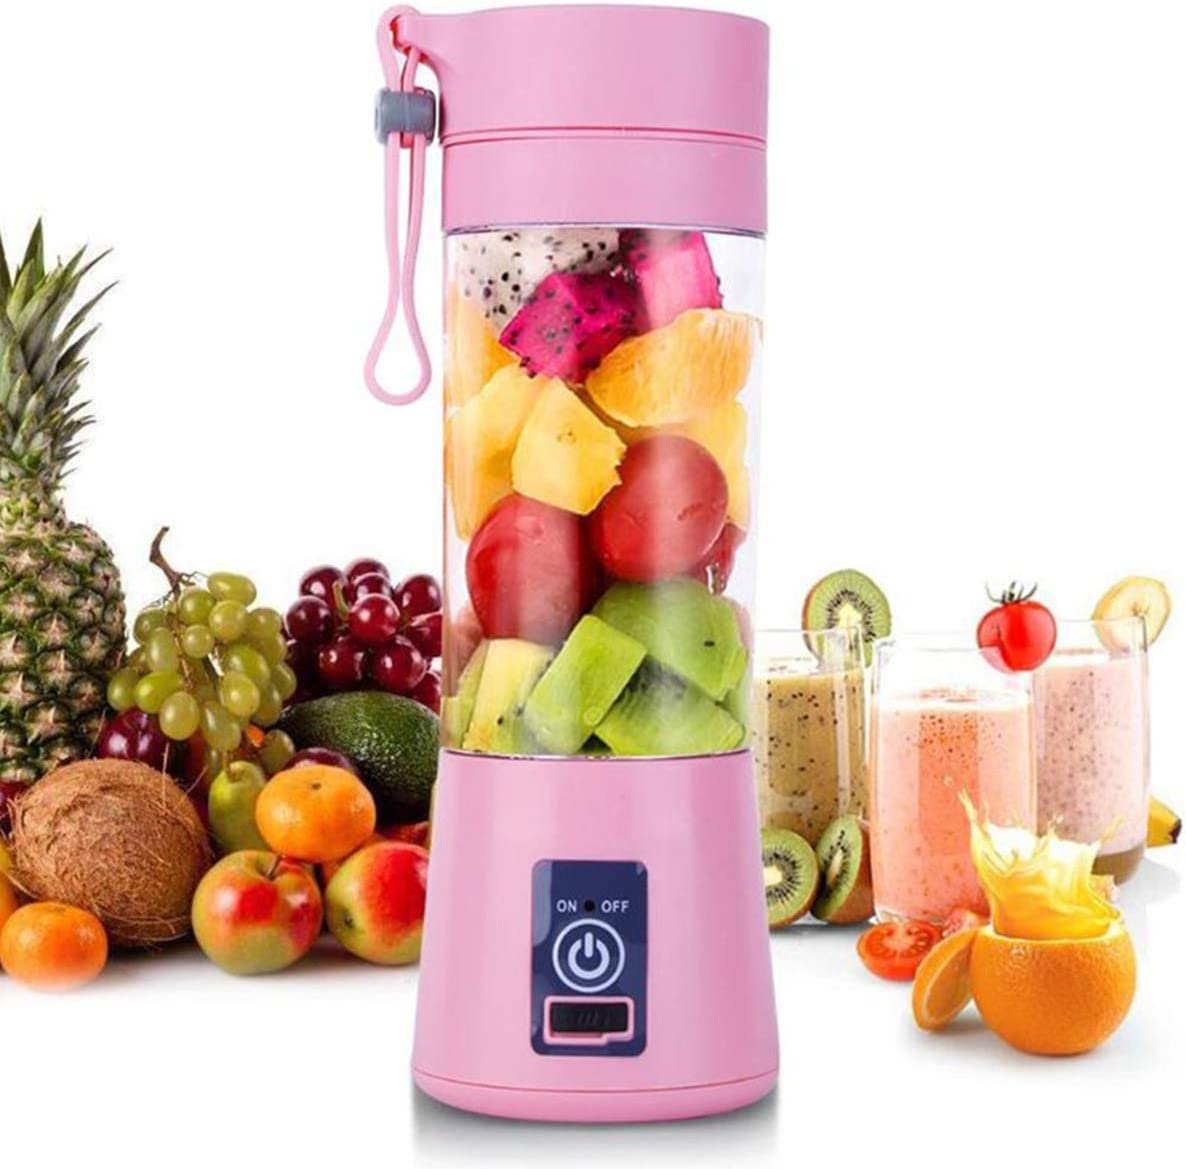 KINLOON JHX Portable Blender, Personal Size Blender Shakes and Smoothies Mini Jucier Cup USB Rechargeable Battery Strong Power Ice Blender Mixer Home Office Sports Travel Outdoors